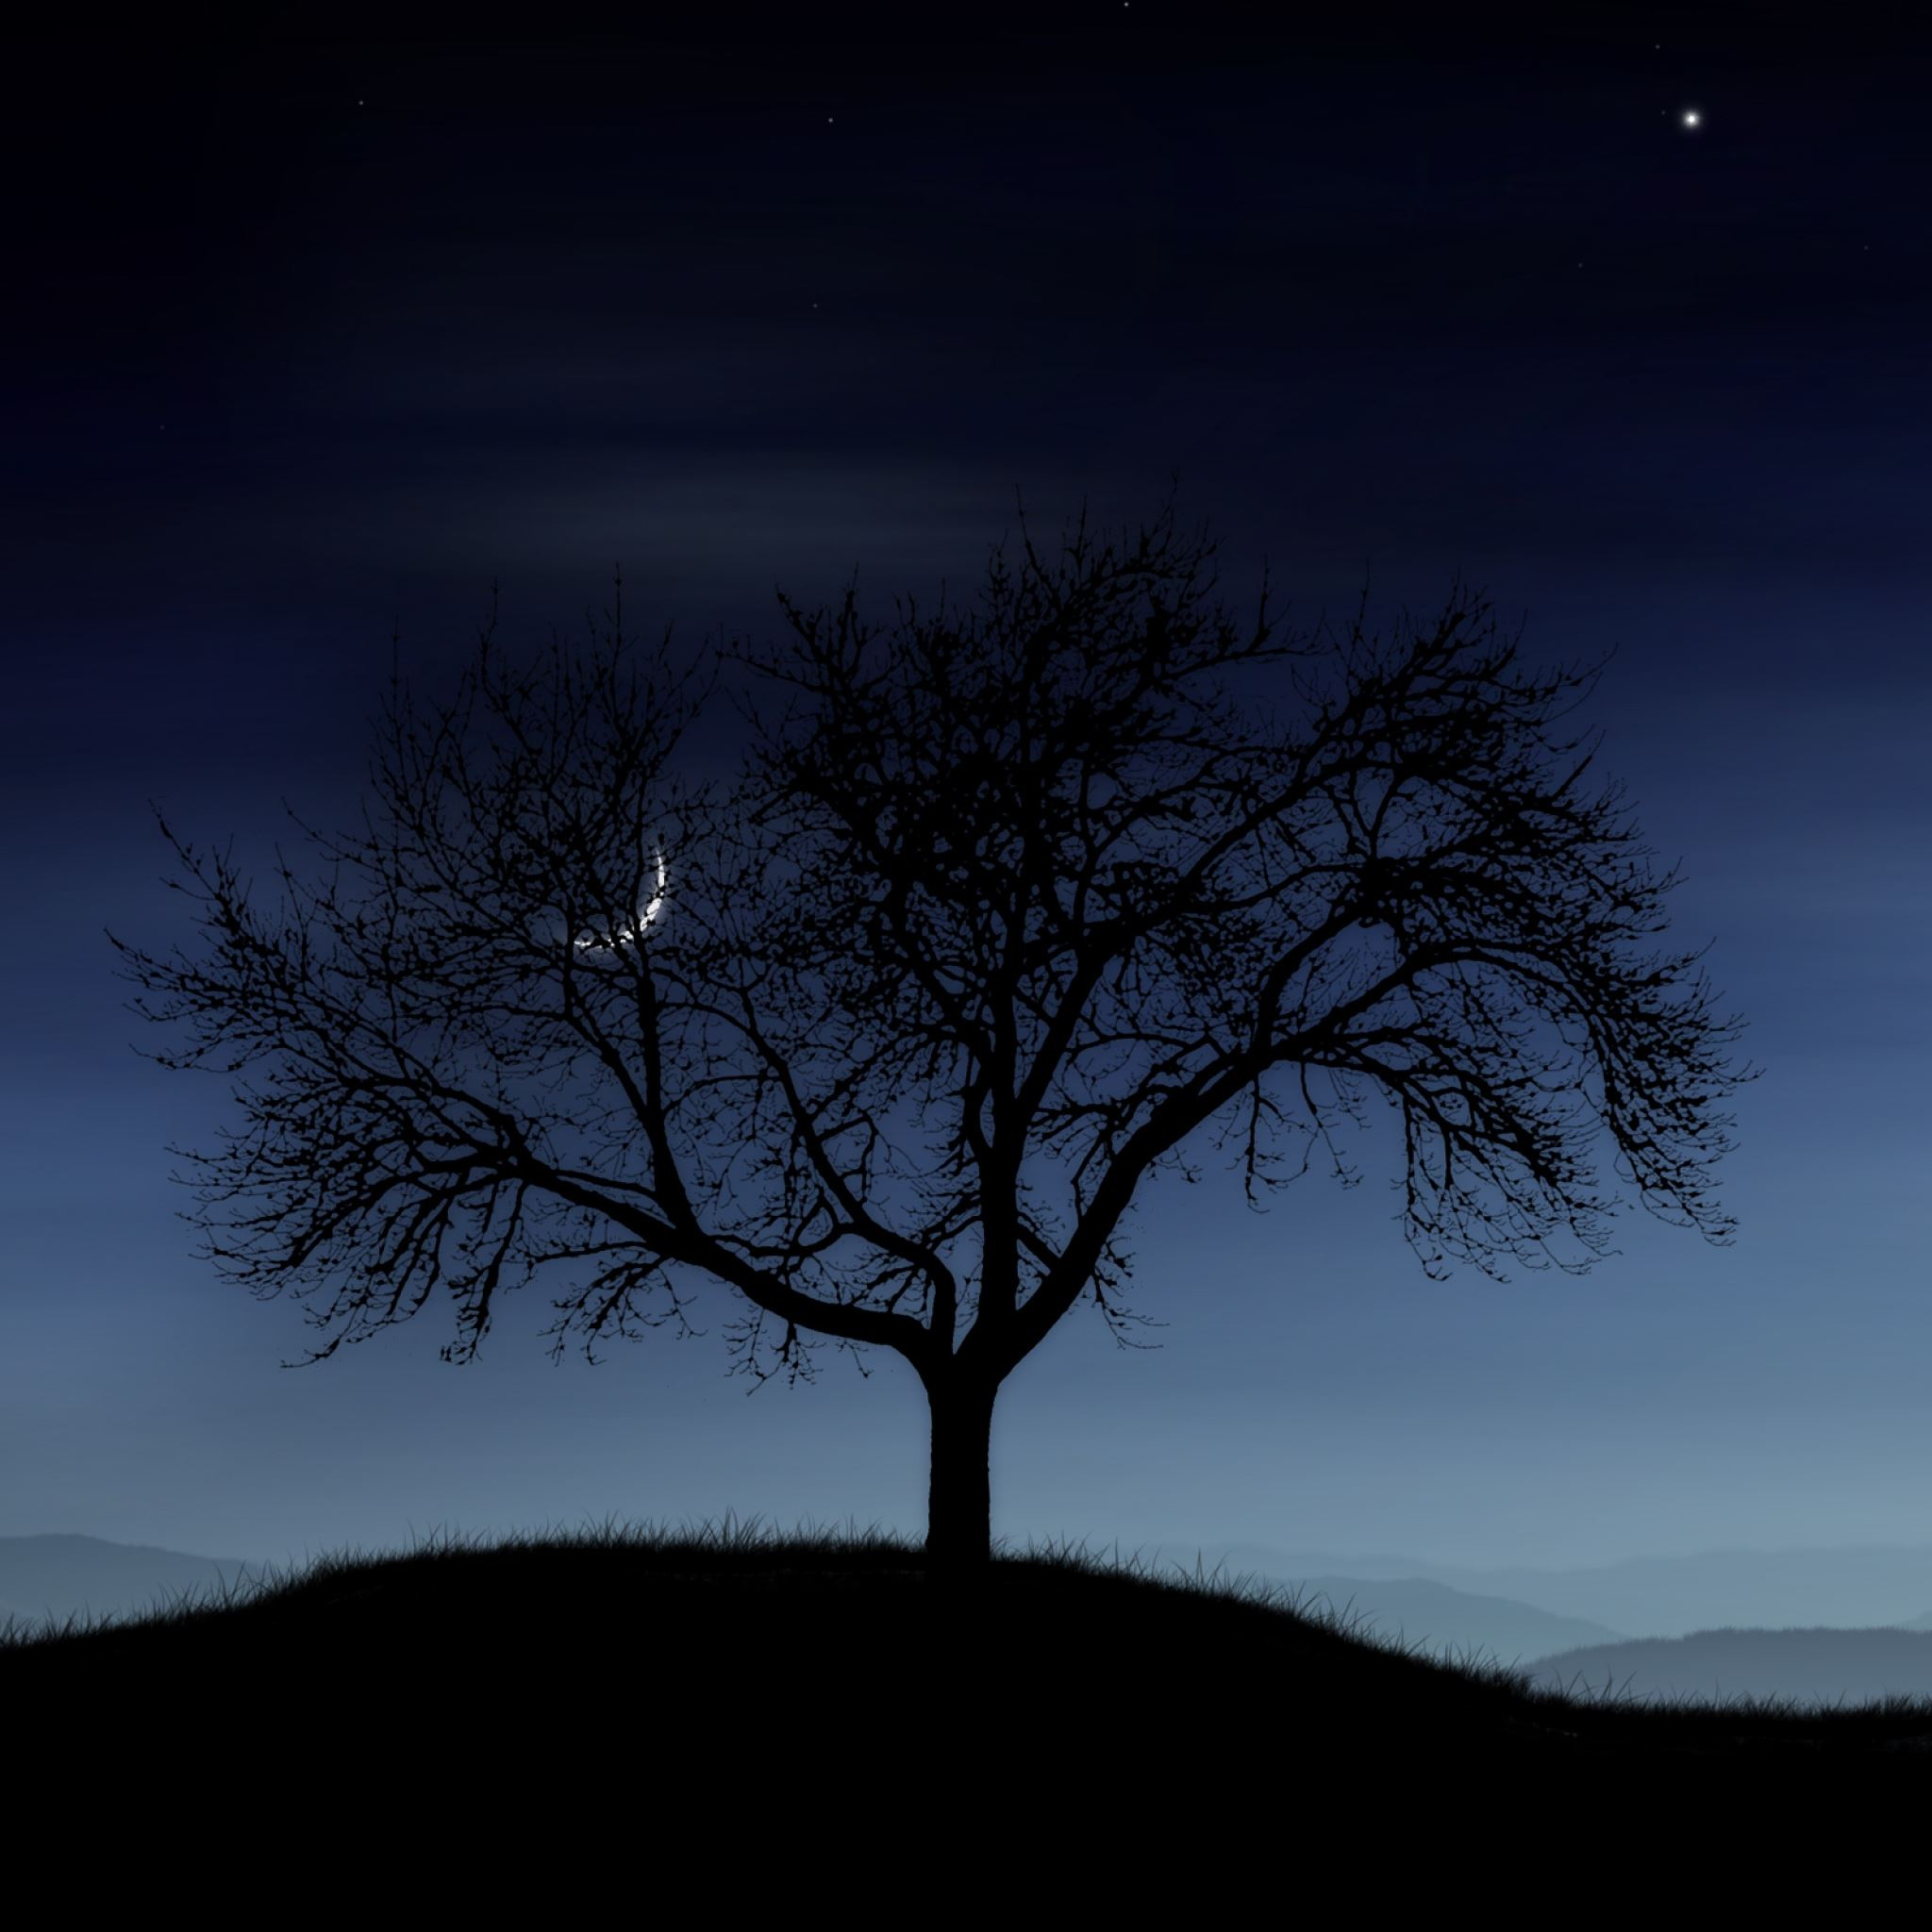 Tree night lonely silhouette stars moon fog iPad Air wallpaper